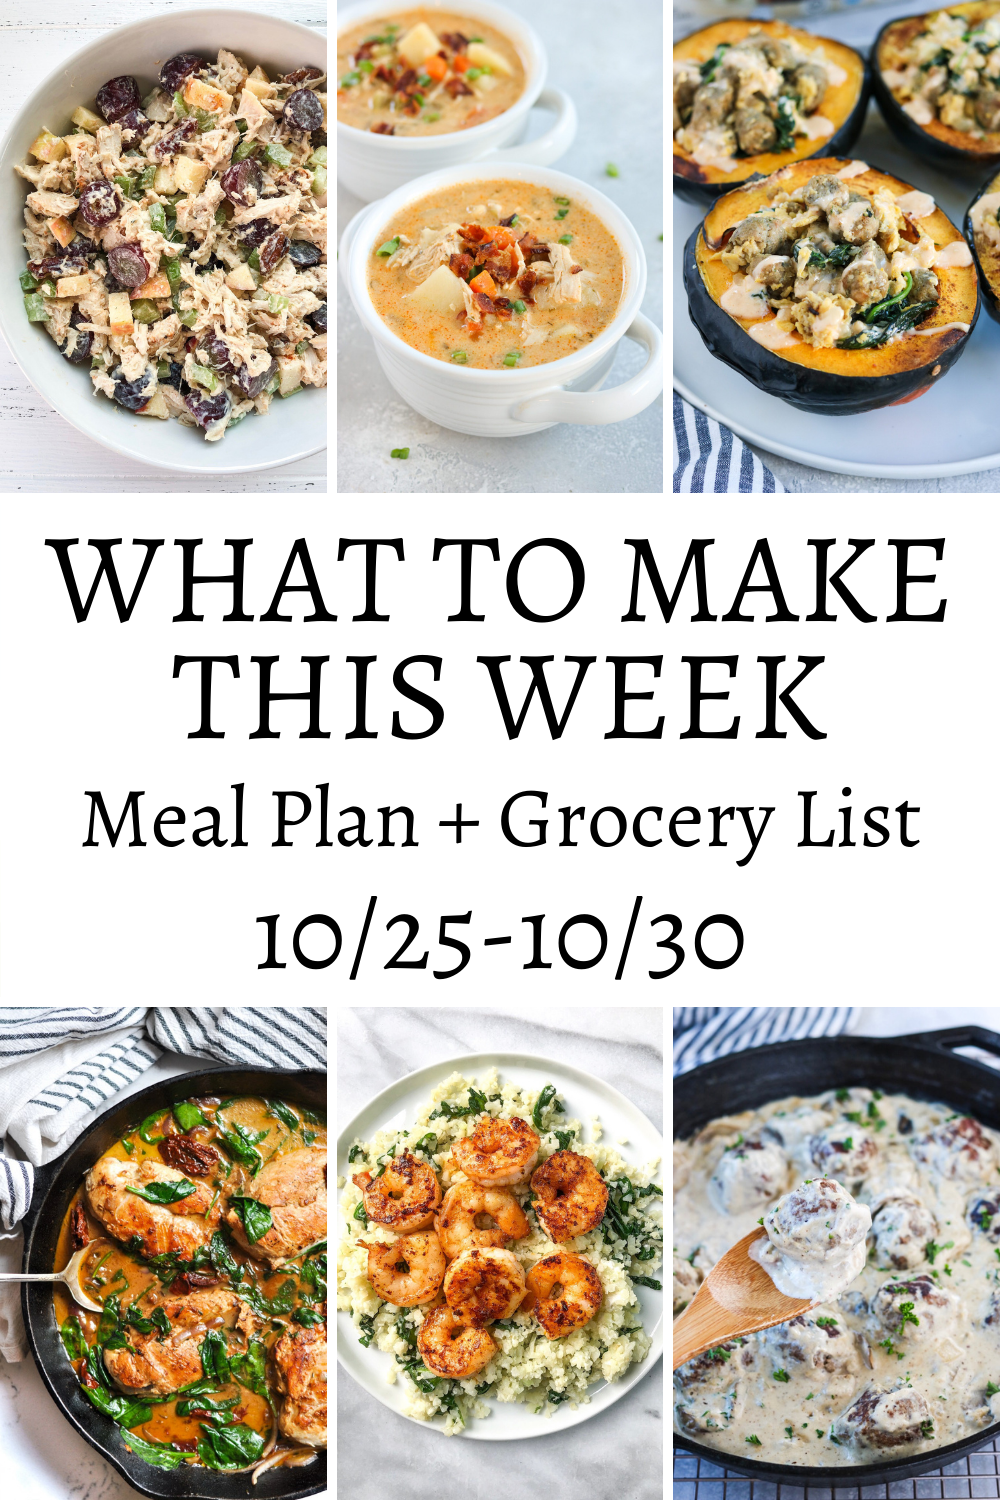 What To Make This Week – 10/25-10/30